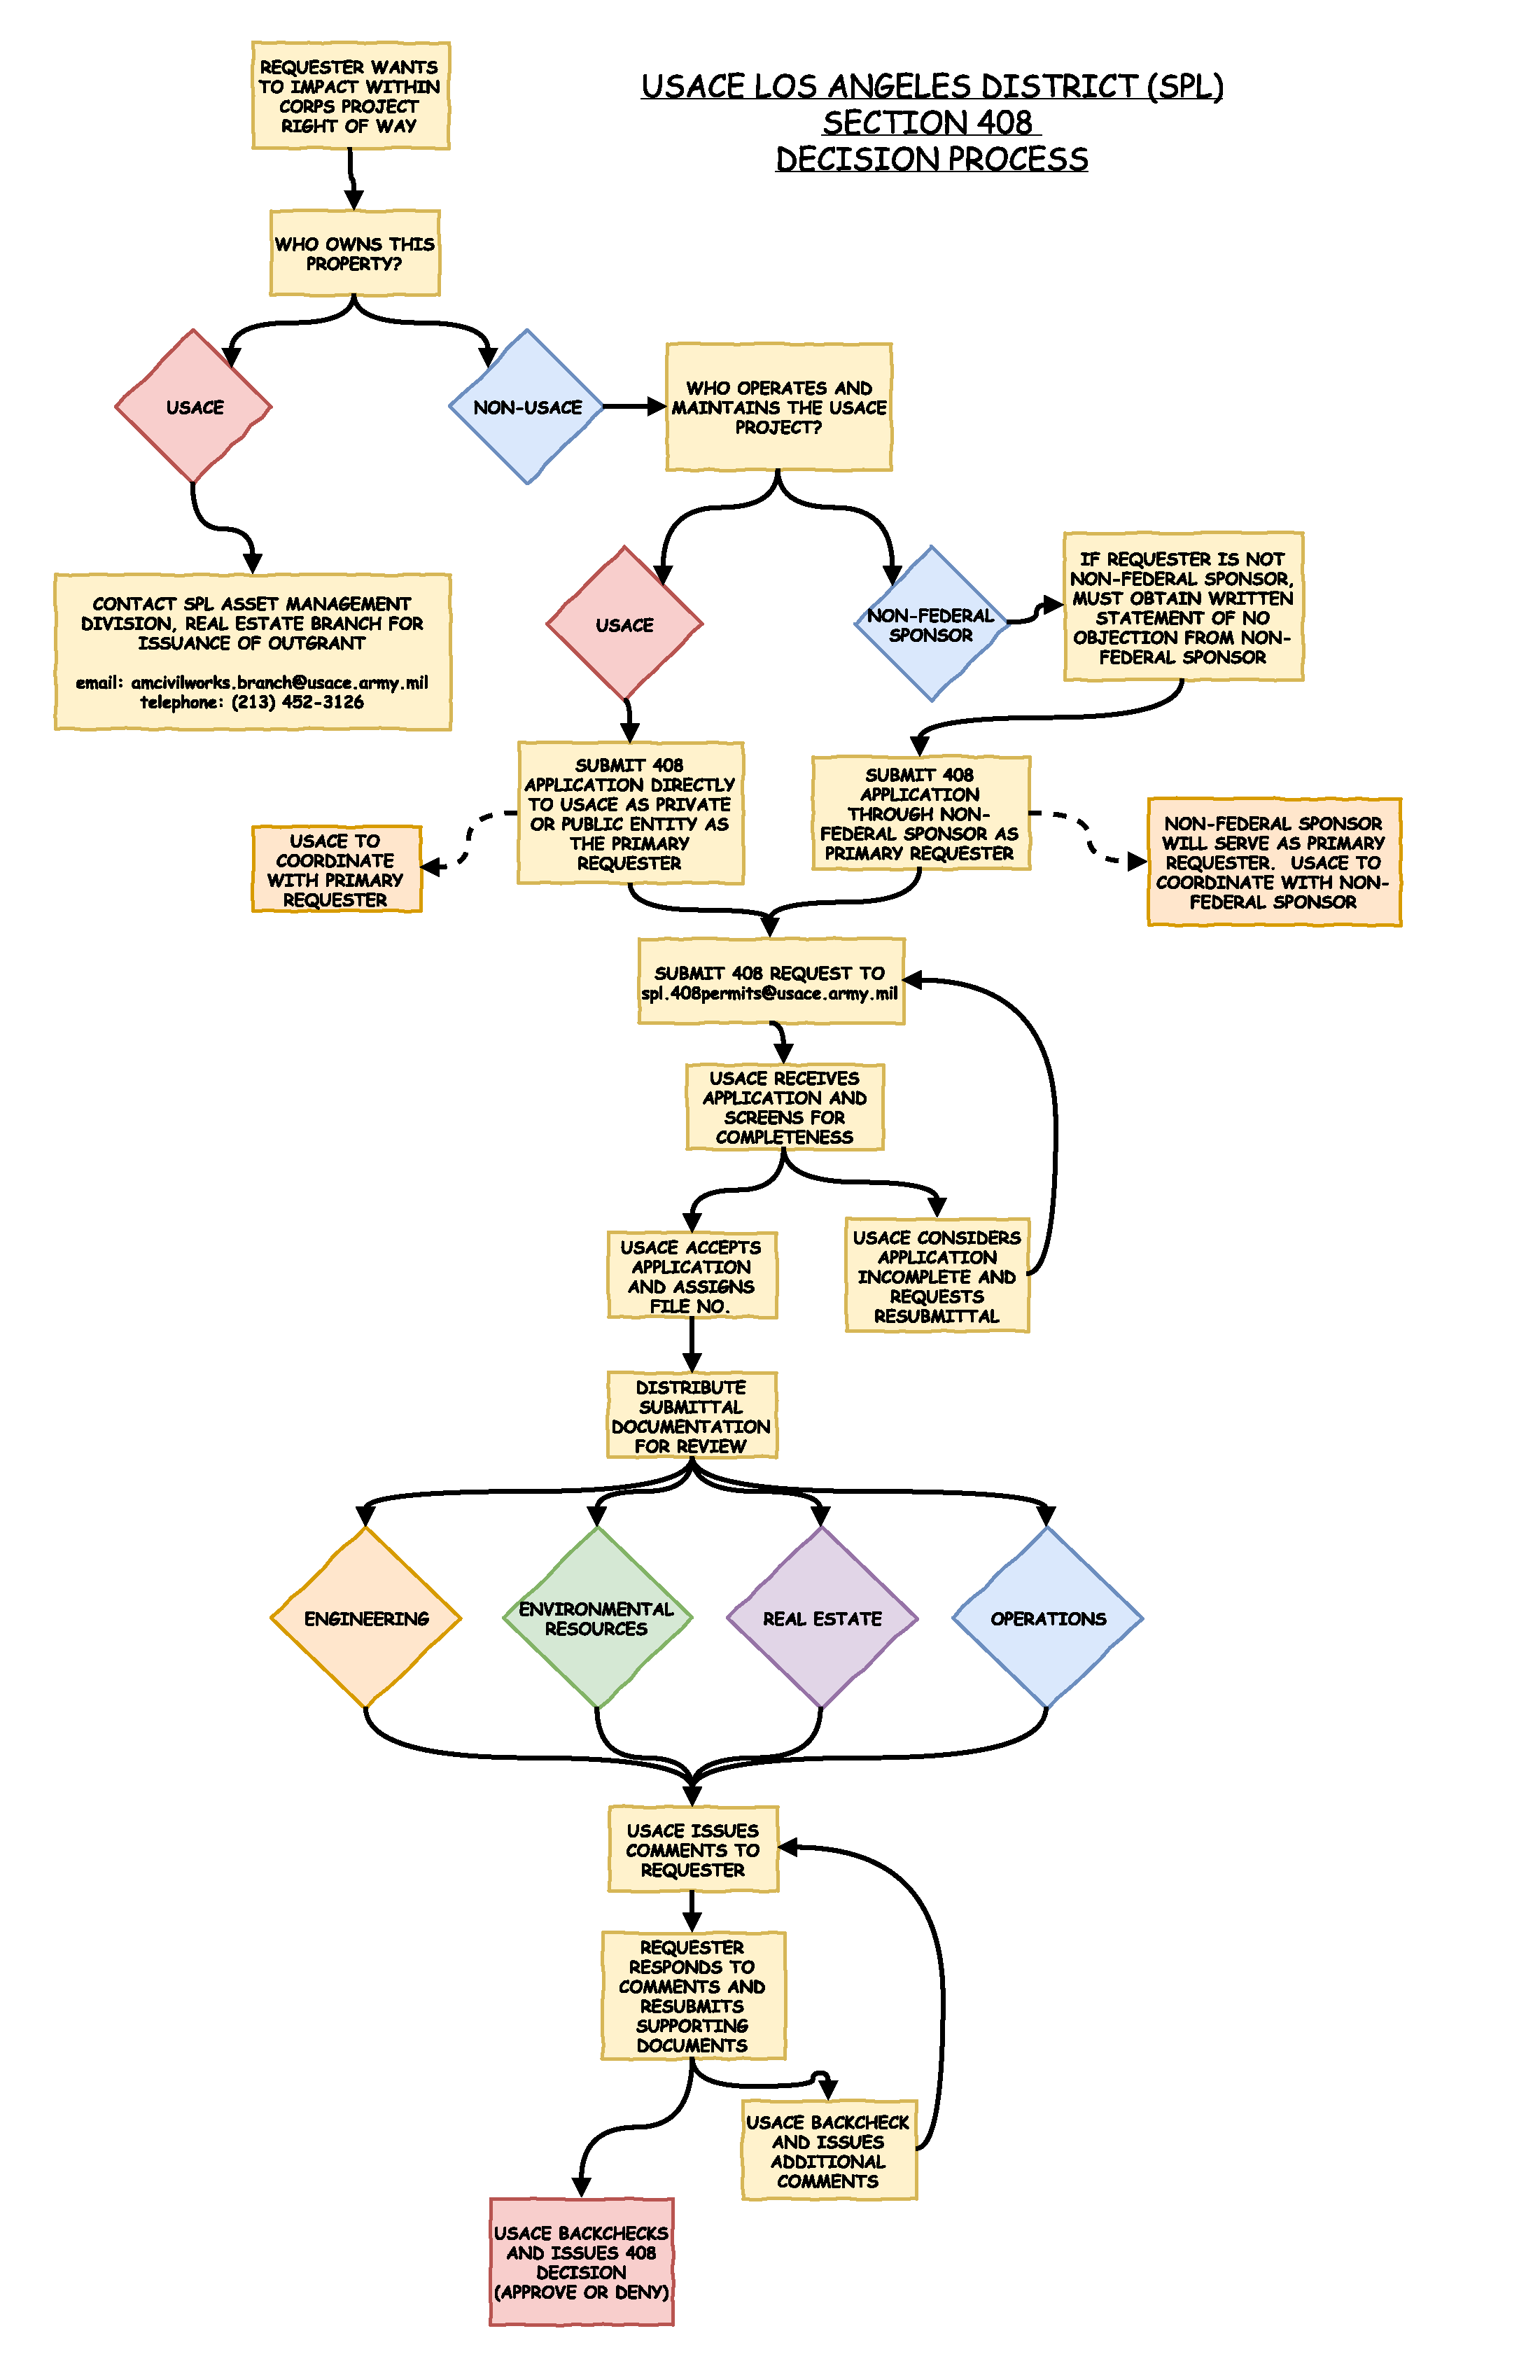 Section 408 permitting information section 408 decision process flow chart geenschuldenfo Choice Image